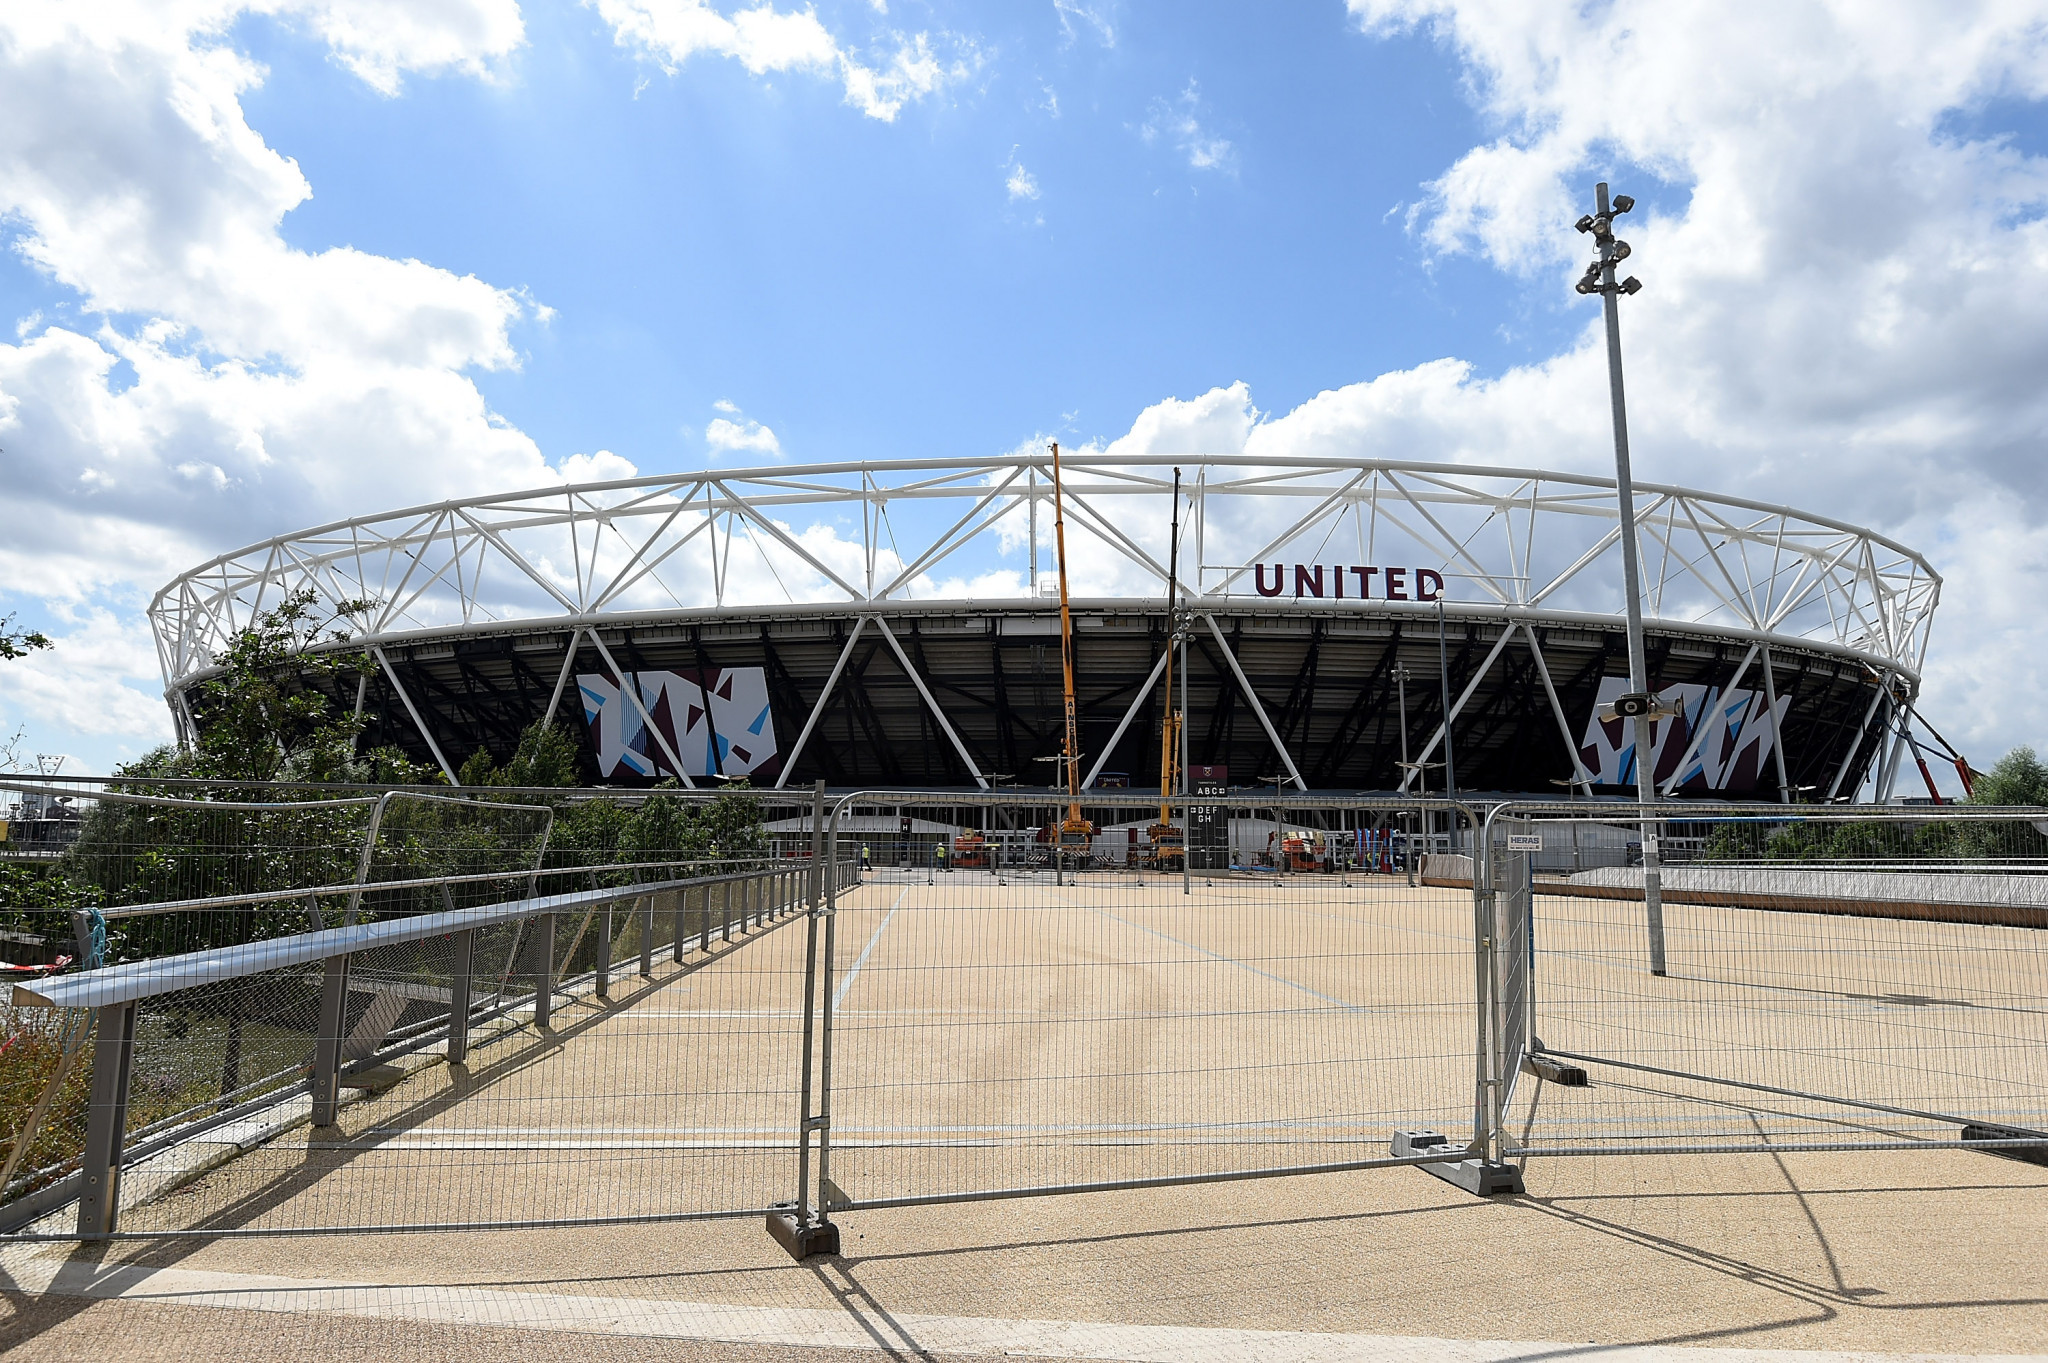 London Olympic Park forecast to lose over £30 million annually for next four years